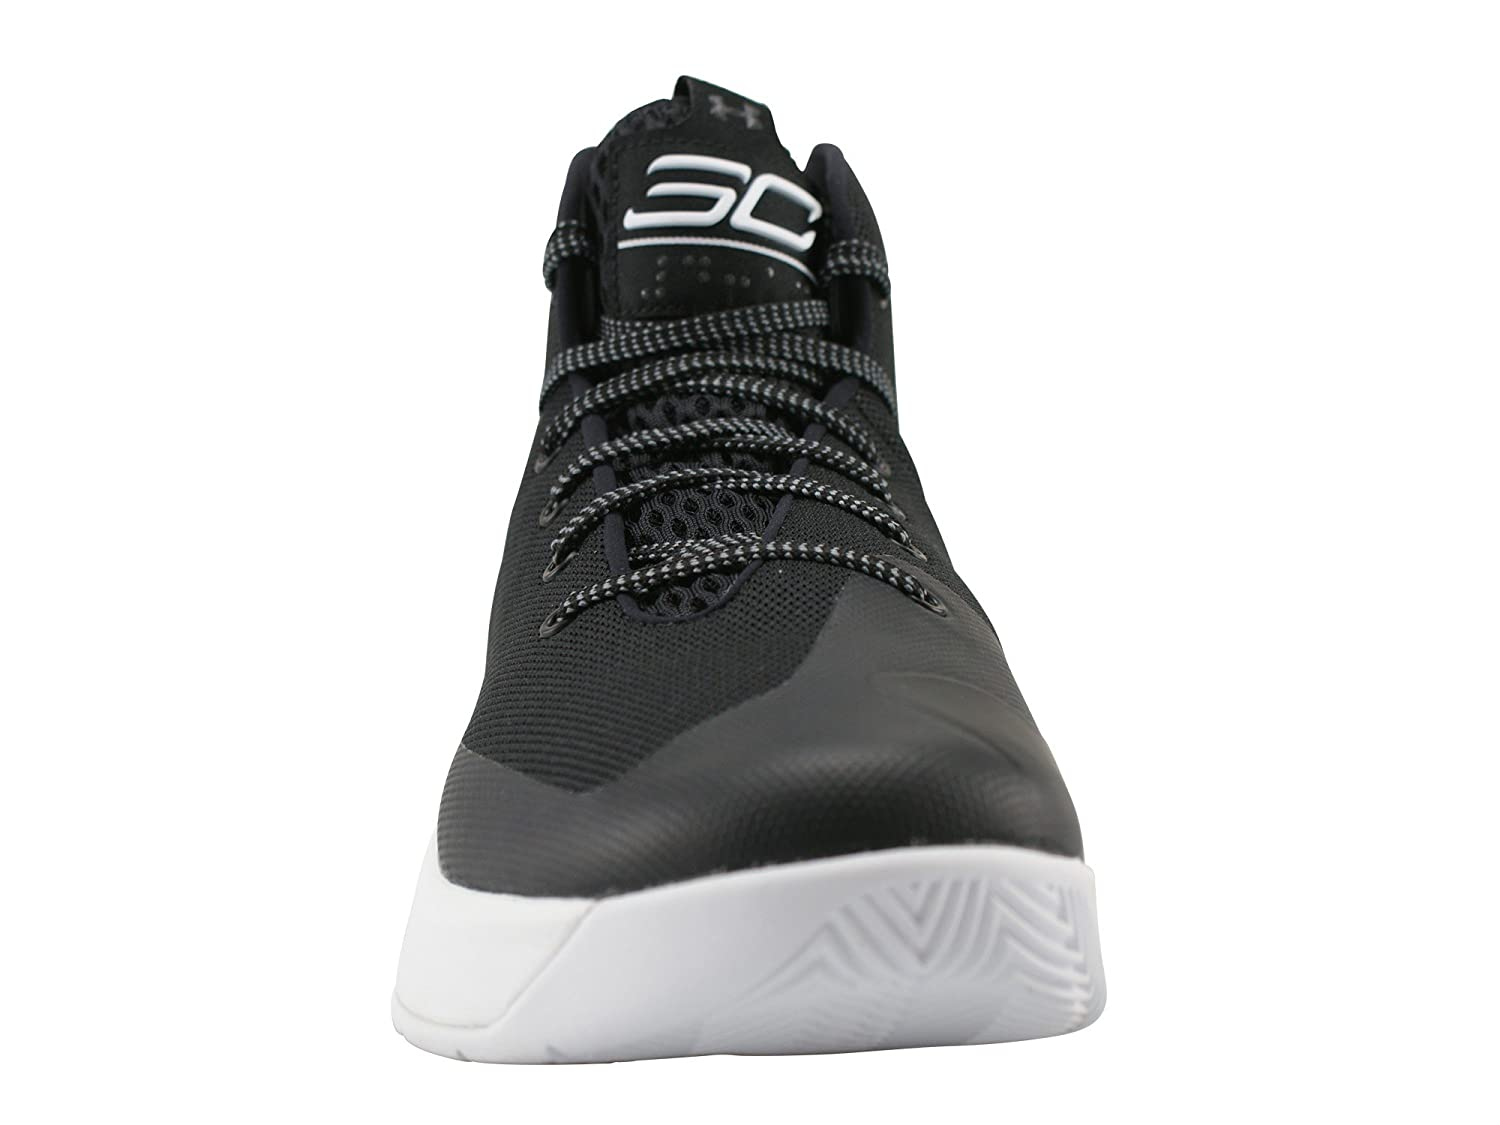 hot sales 7543c 59a0f Amazon.com   Under Armour Men s Curry 3 Basketball Shoes   Basketball